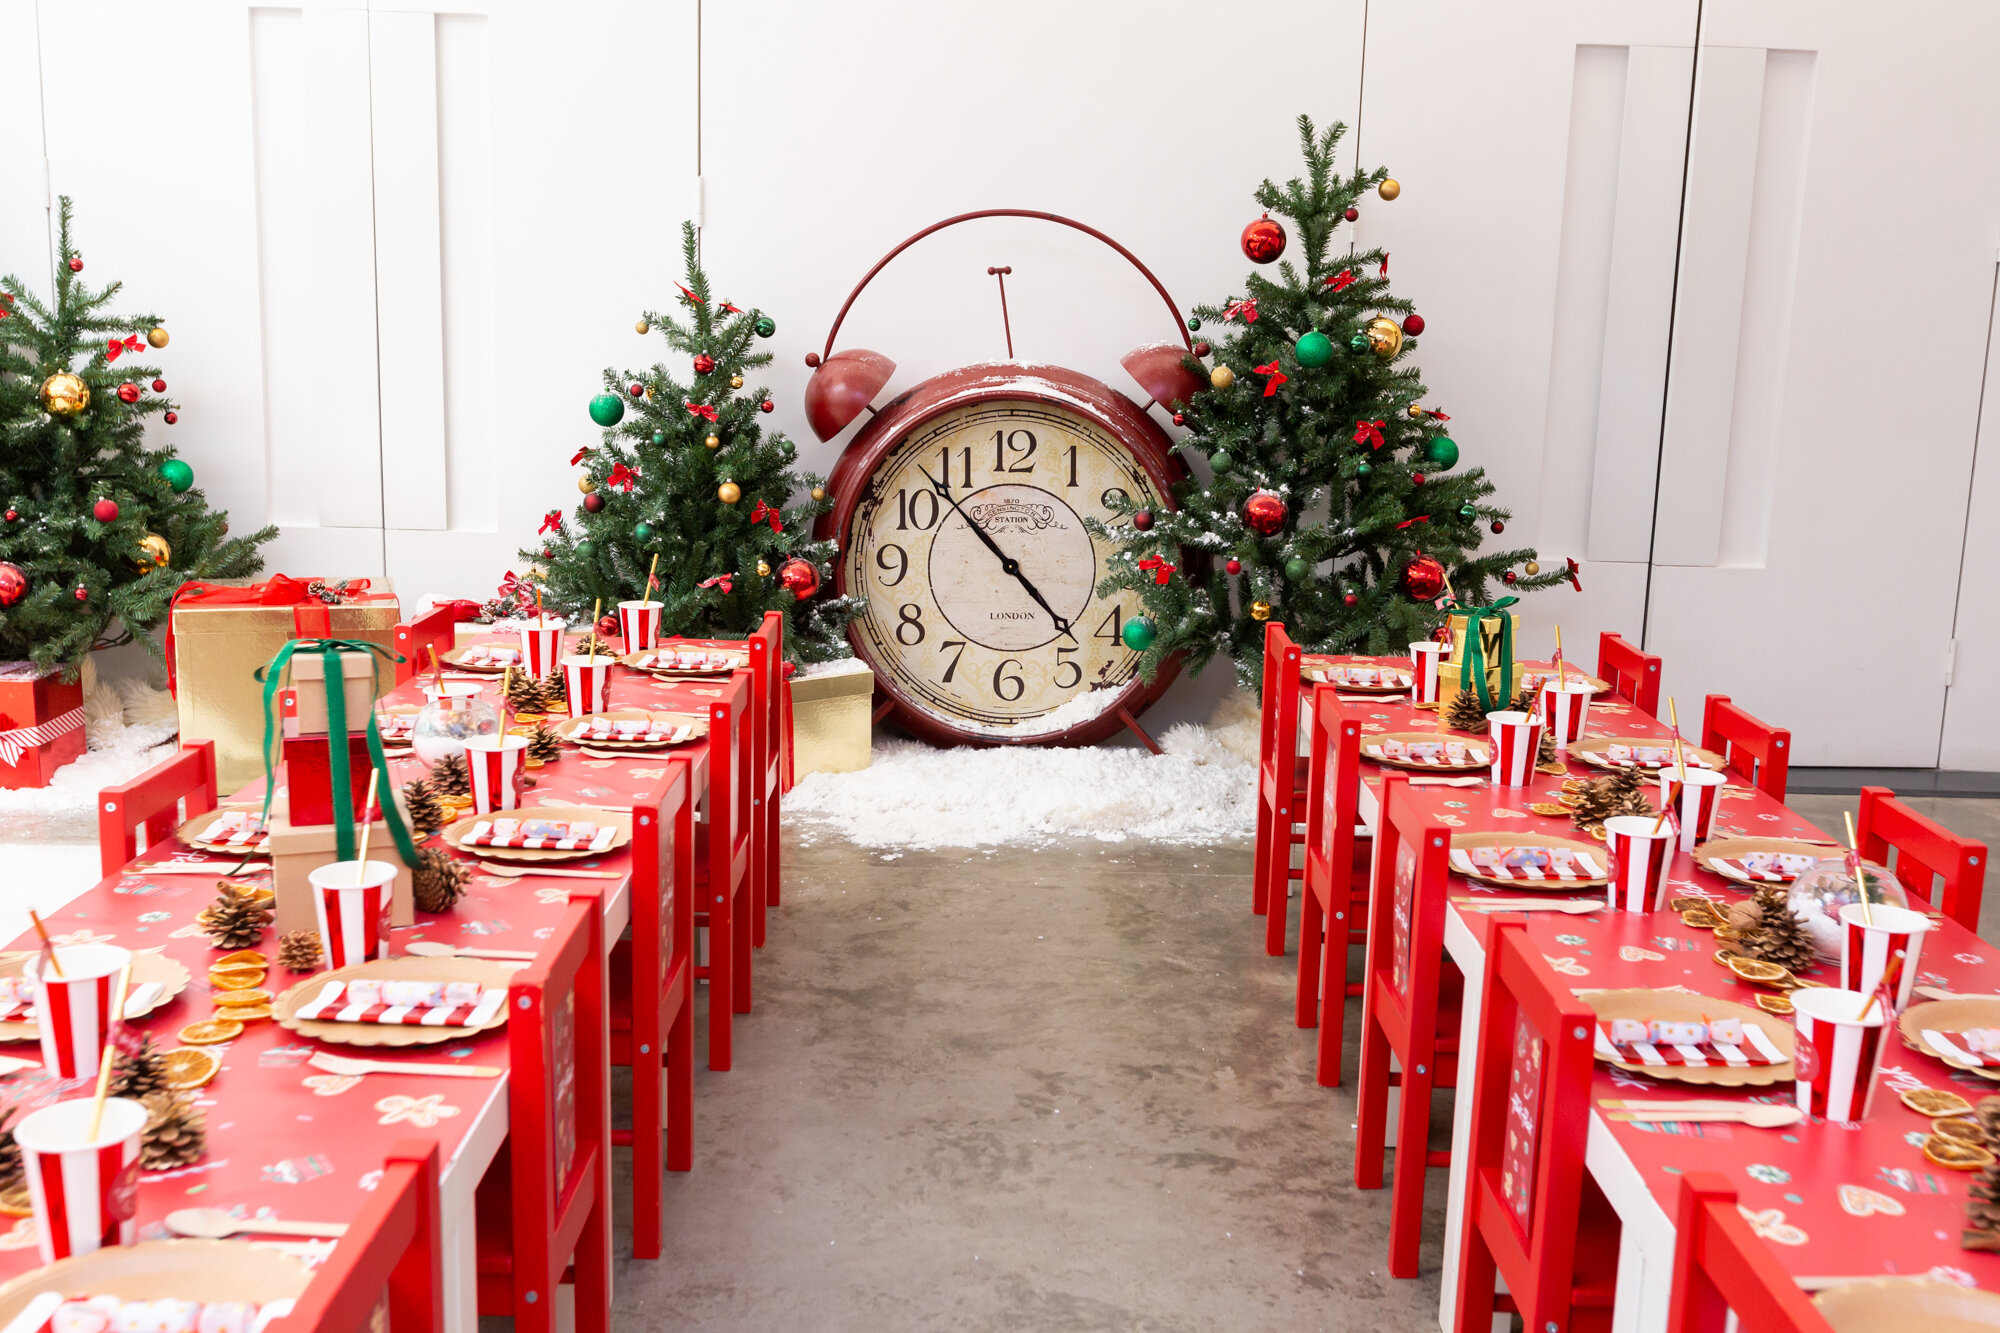 Flik Flak Callie Pettigrew Event Styling Design Set Christmas